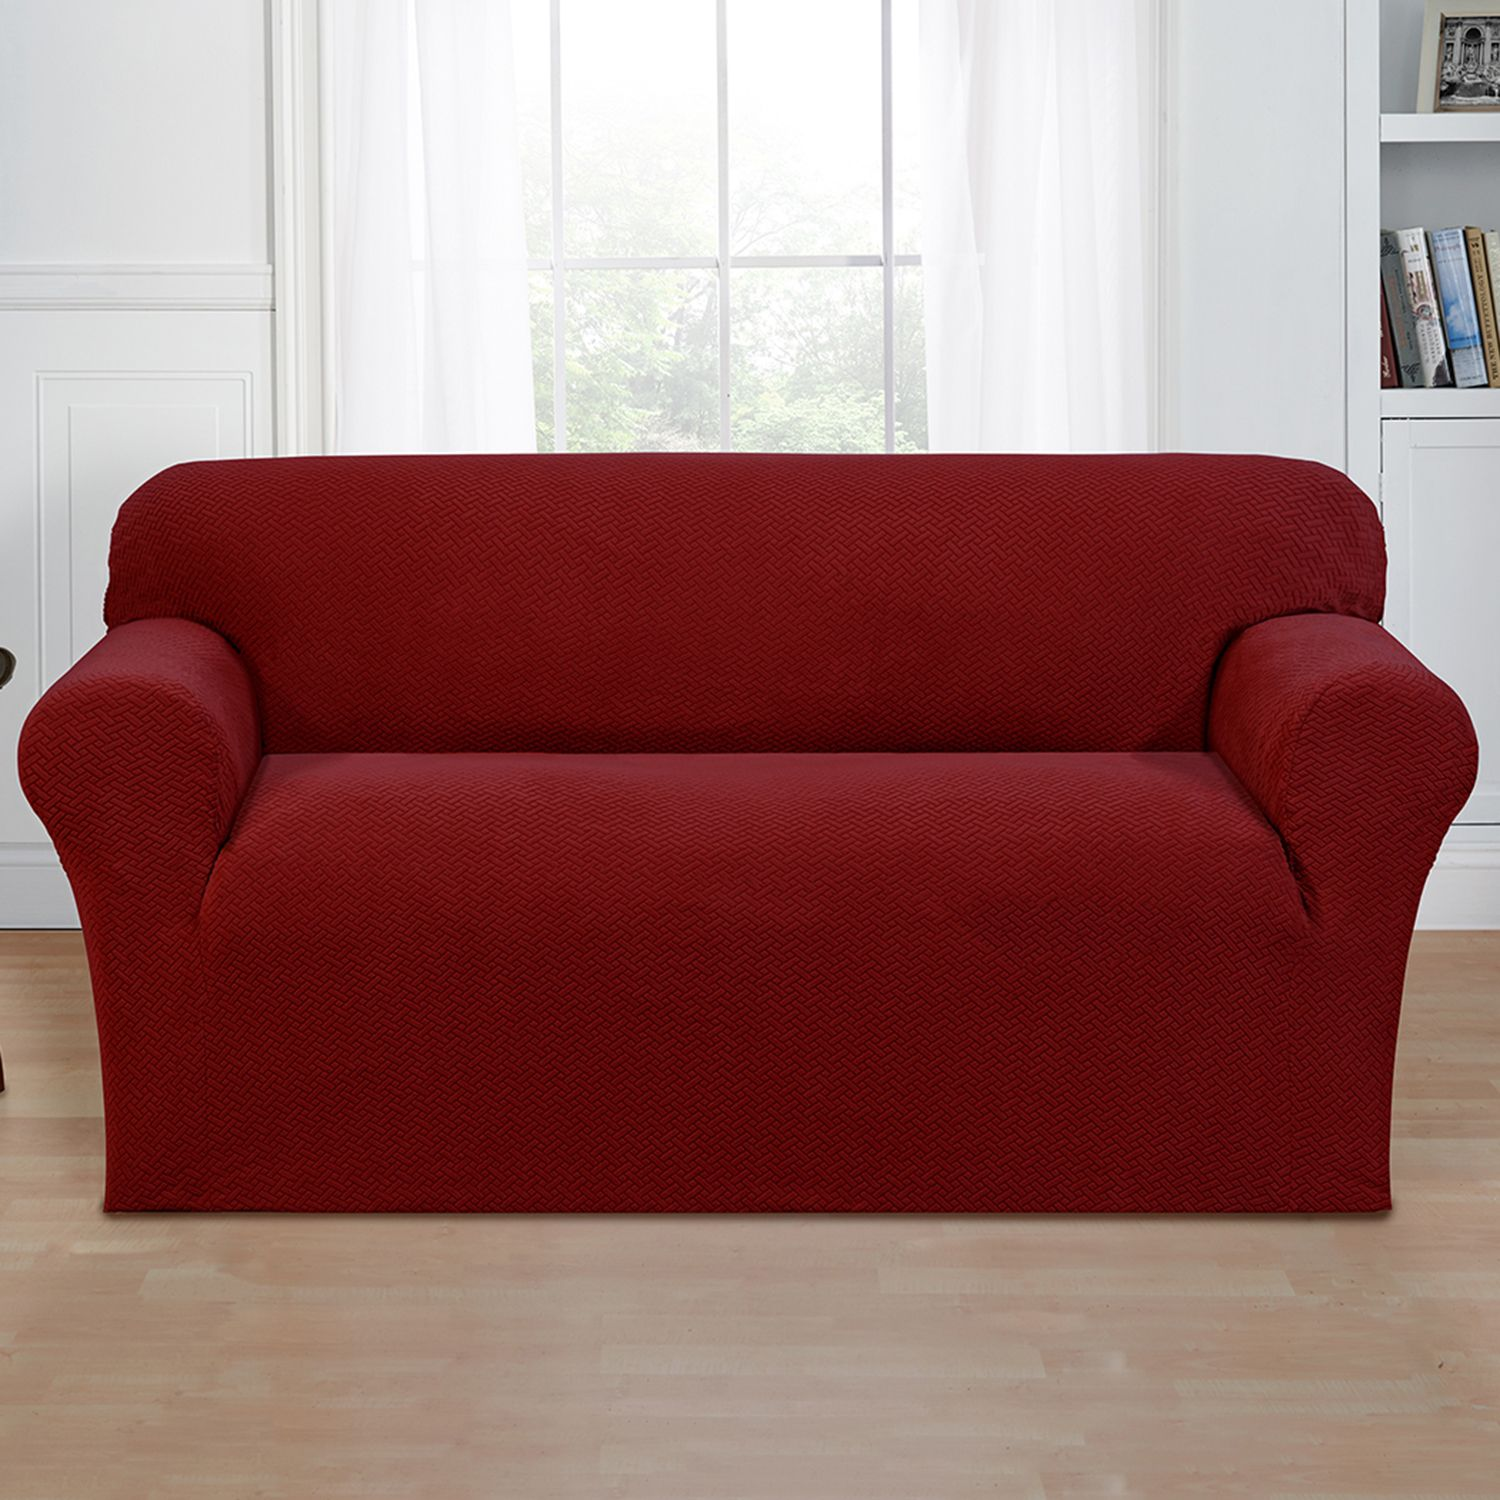 Sofa seat cover new trend